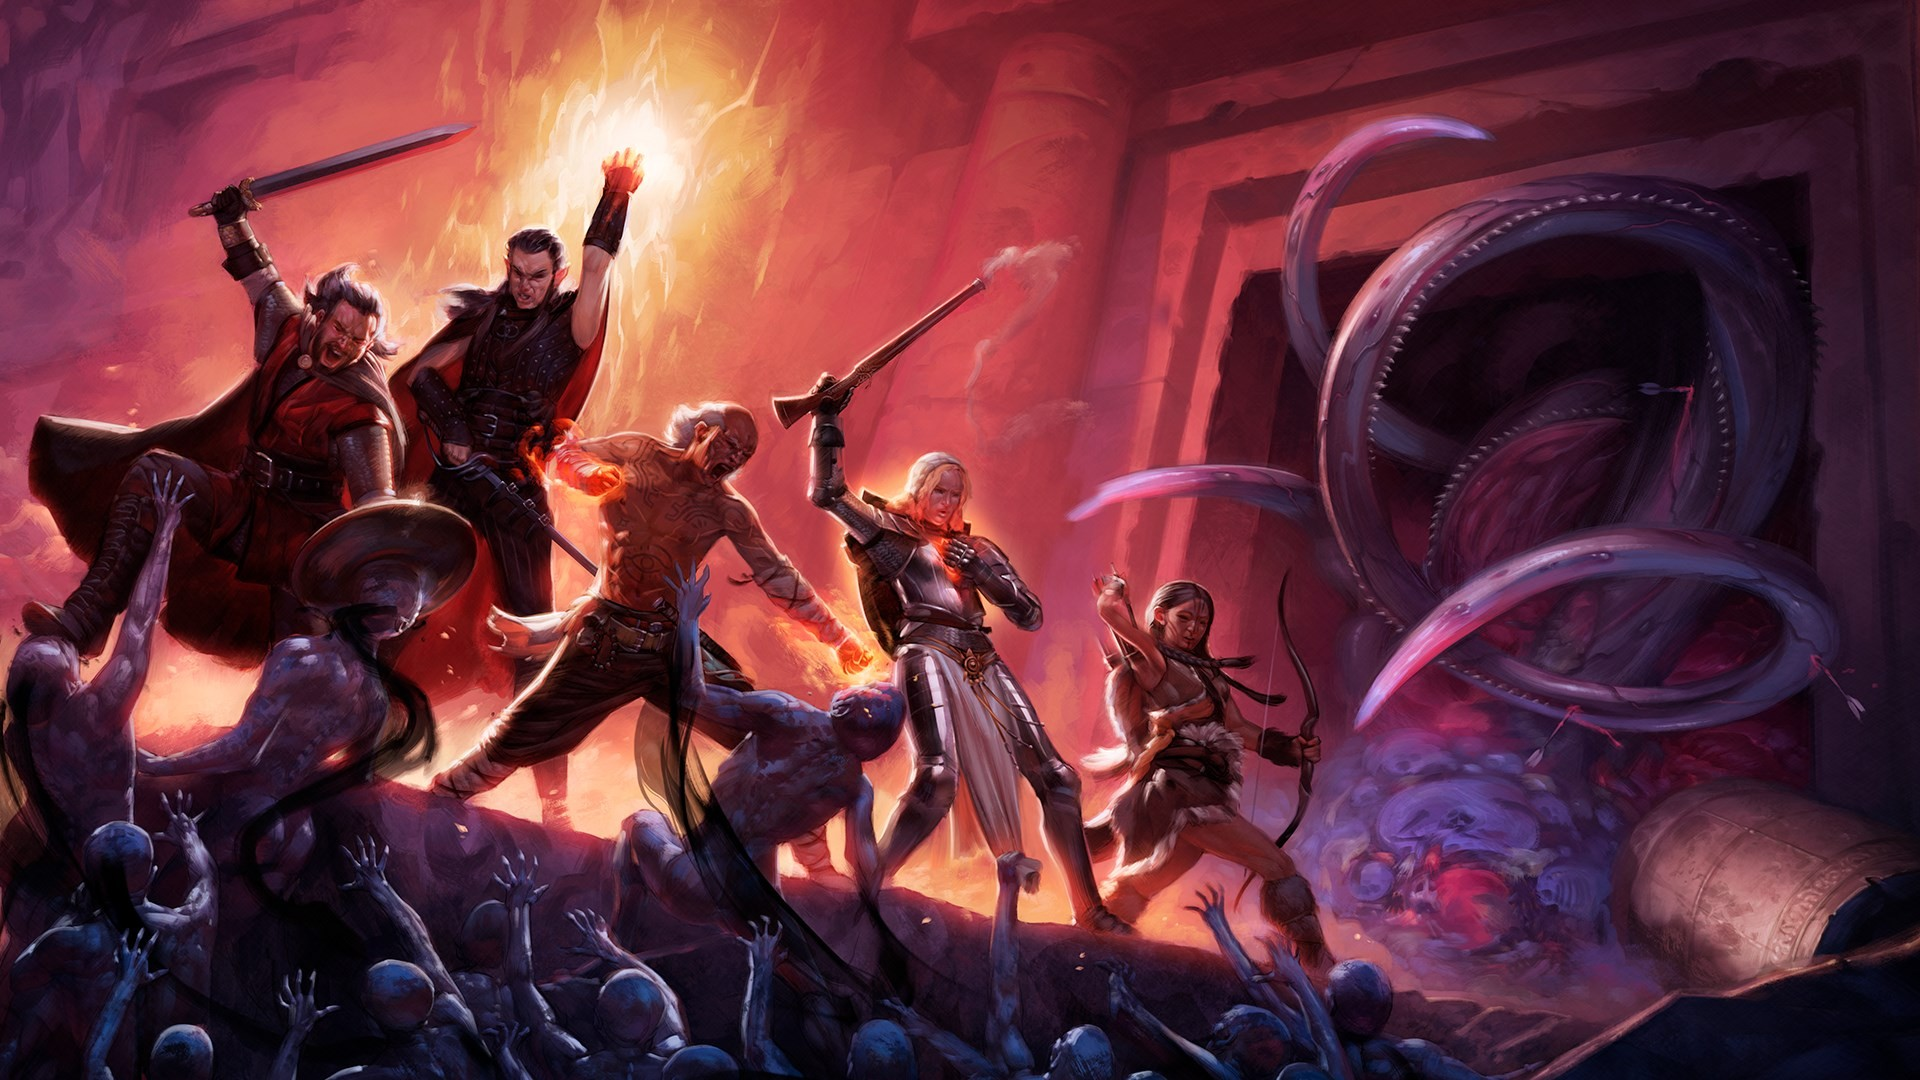 Pillars of Eternity NintendOn